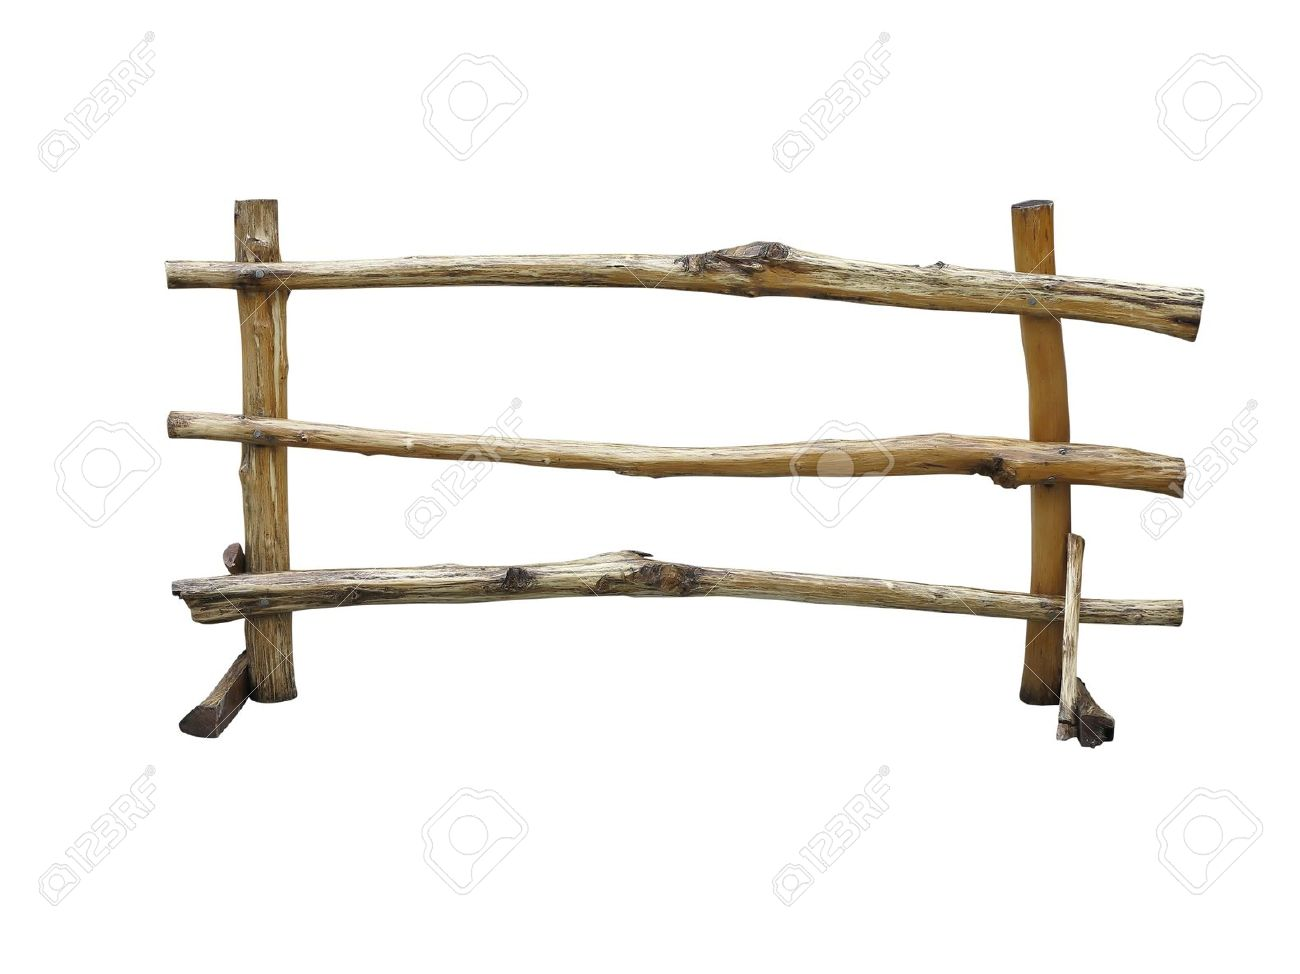 Wooden fence at ranch isolated over white background Stock Photo - 16641937